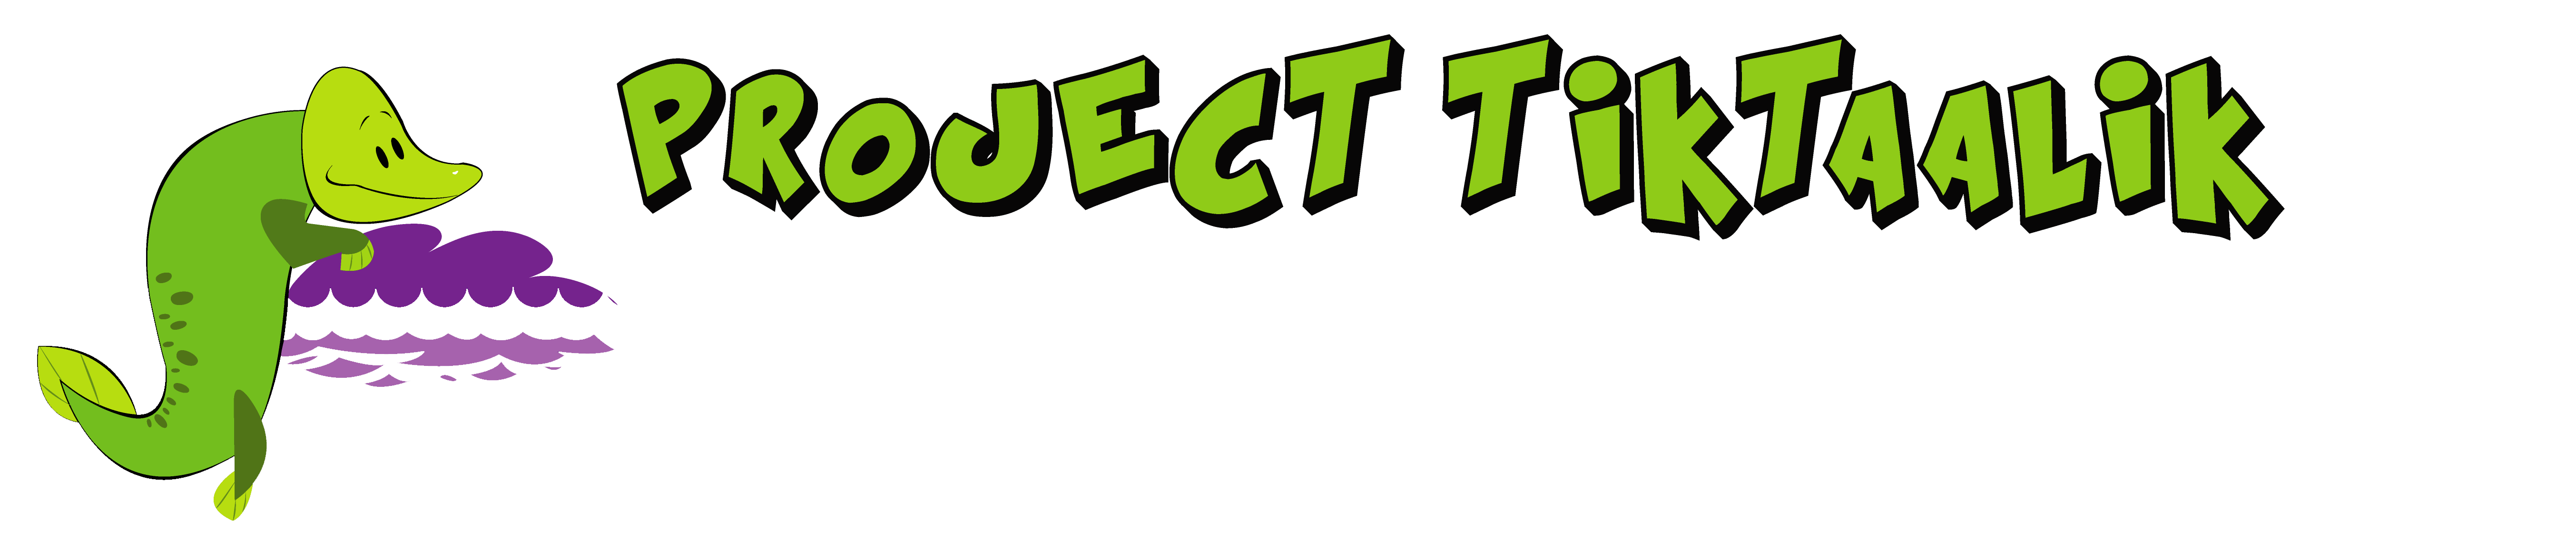 Project Tiktaalik